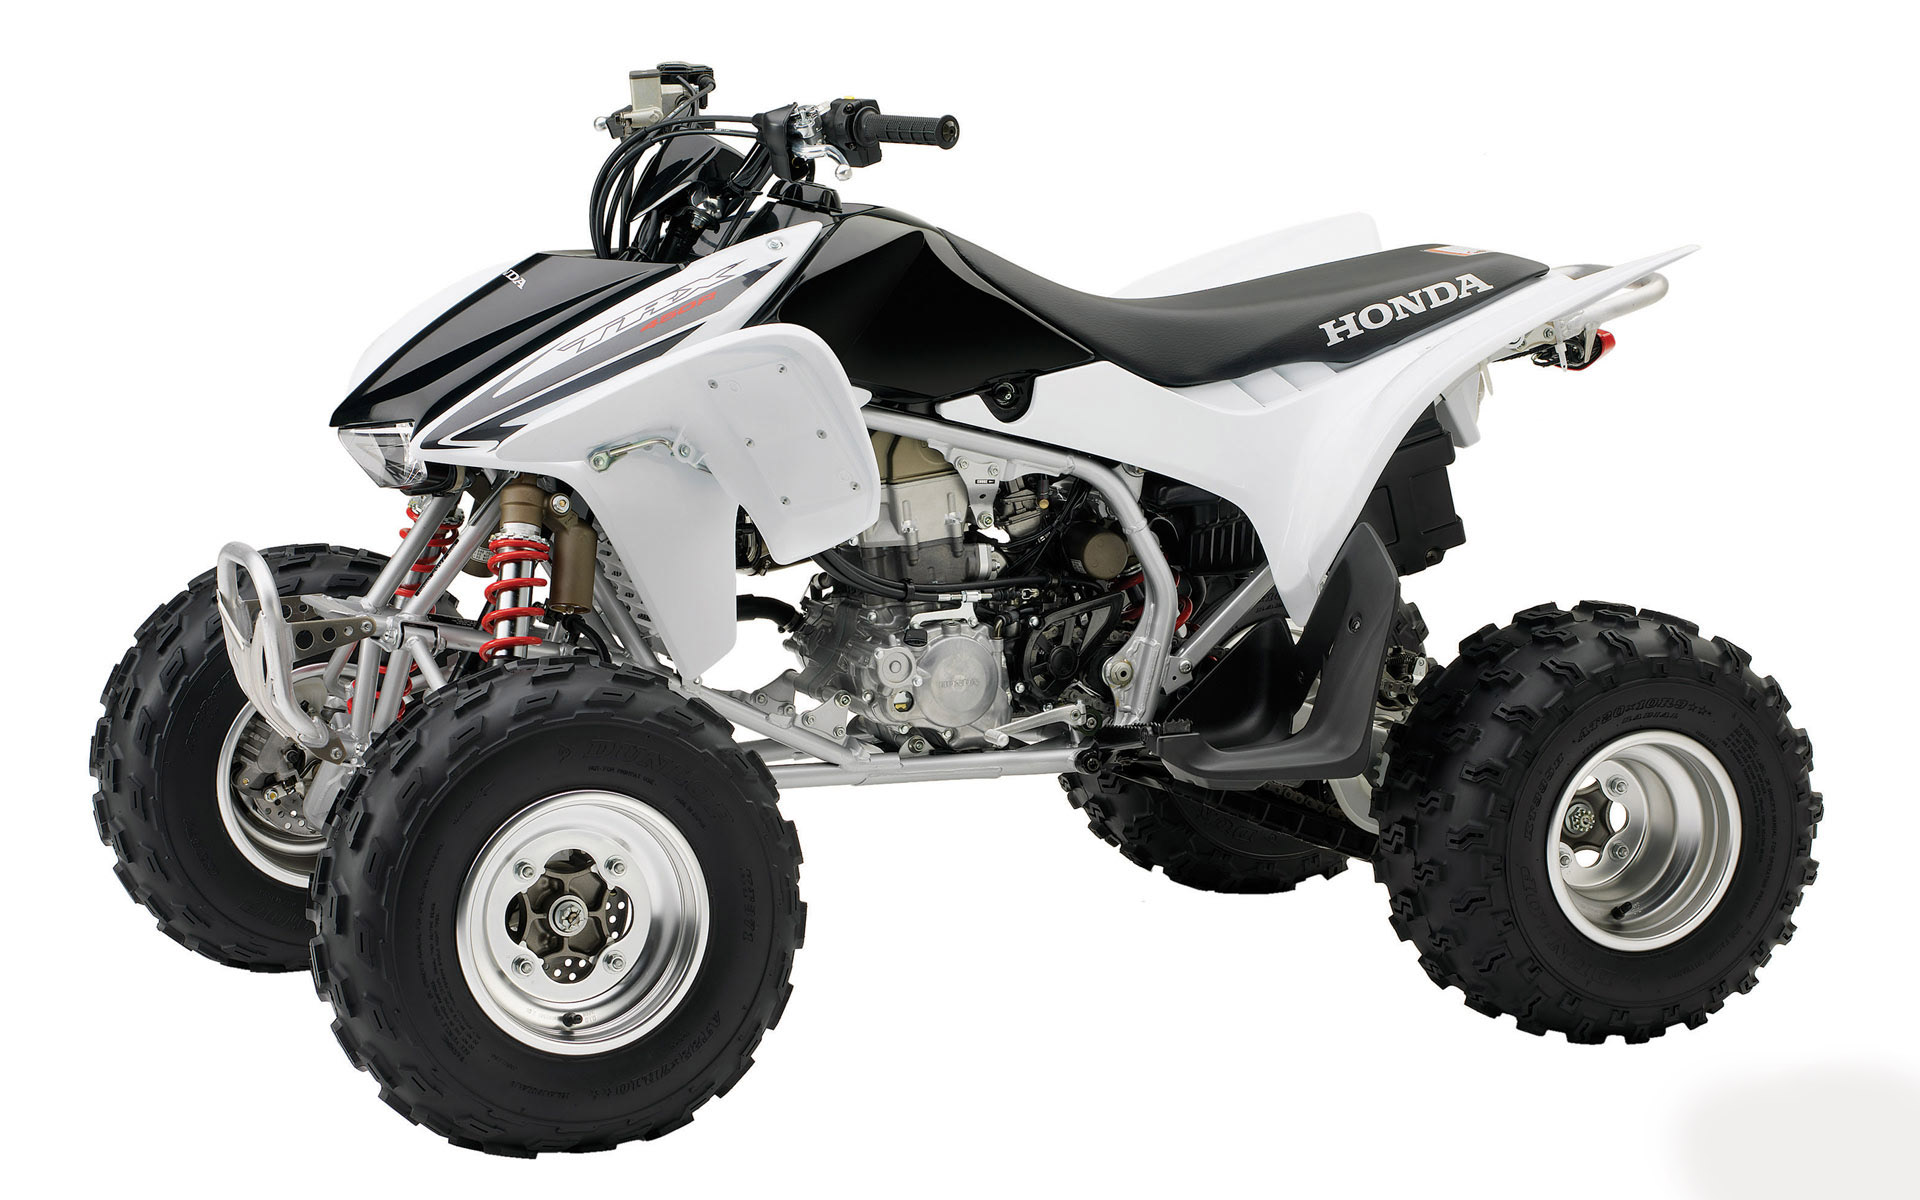 Four Wheeler With Rims: HD ATV Bikes Wallpapers